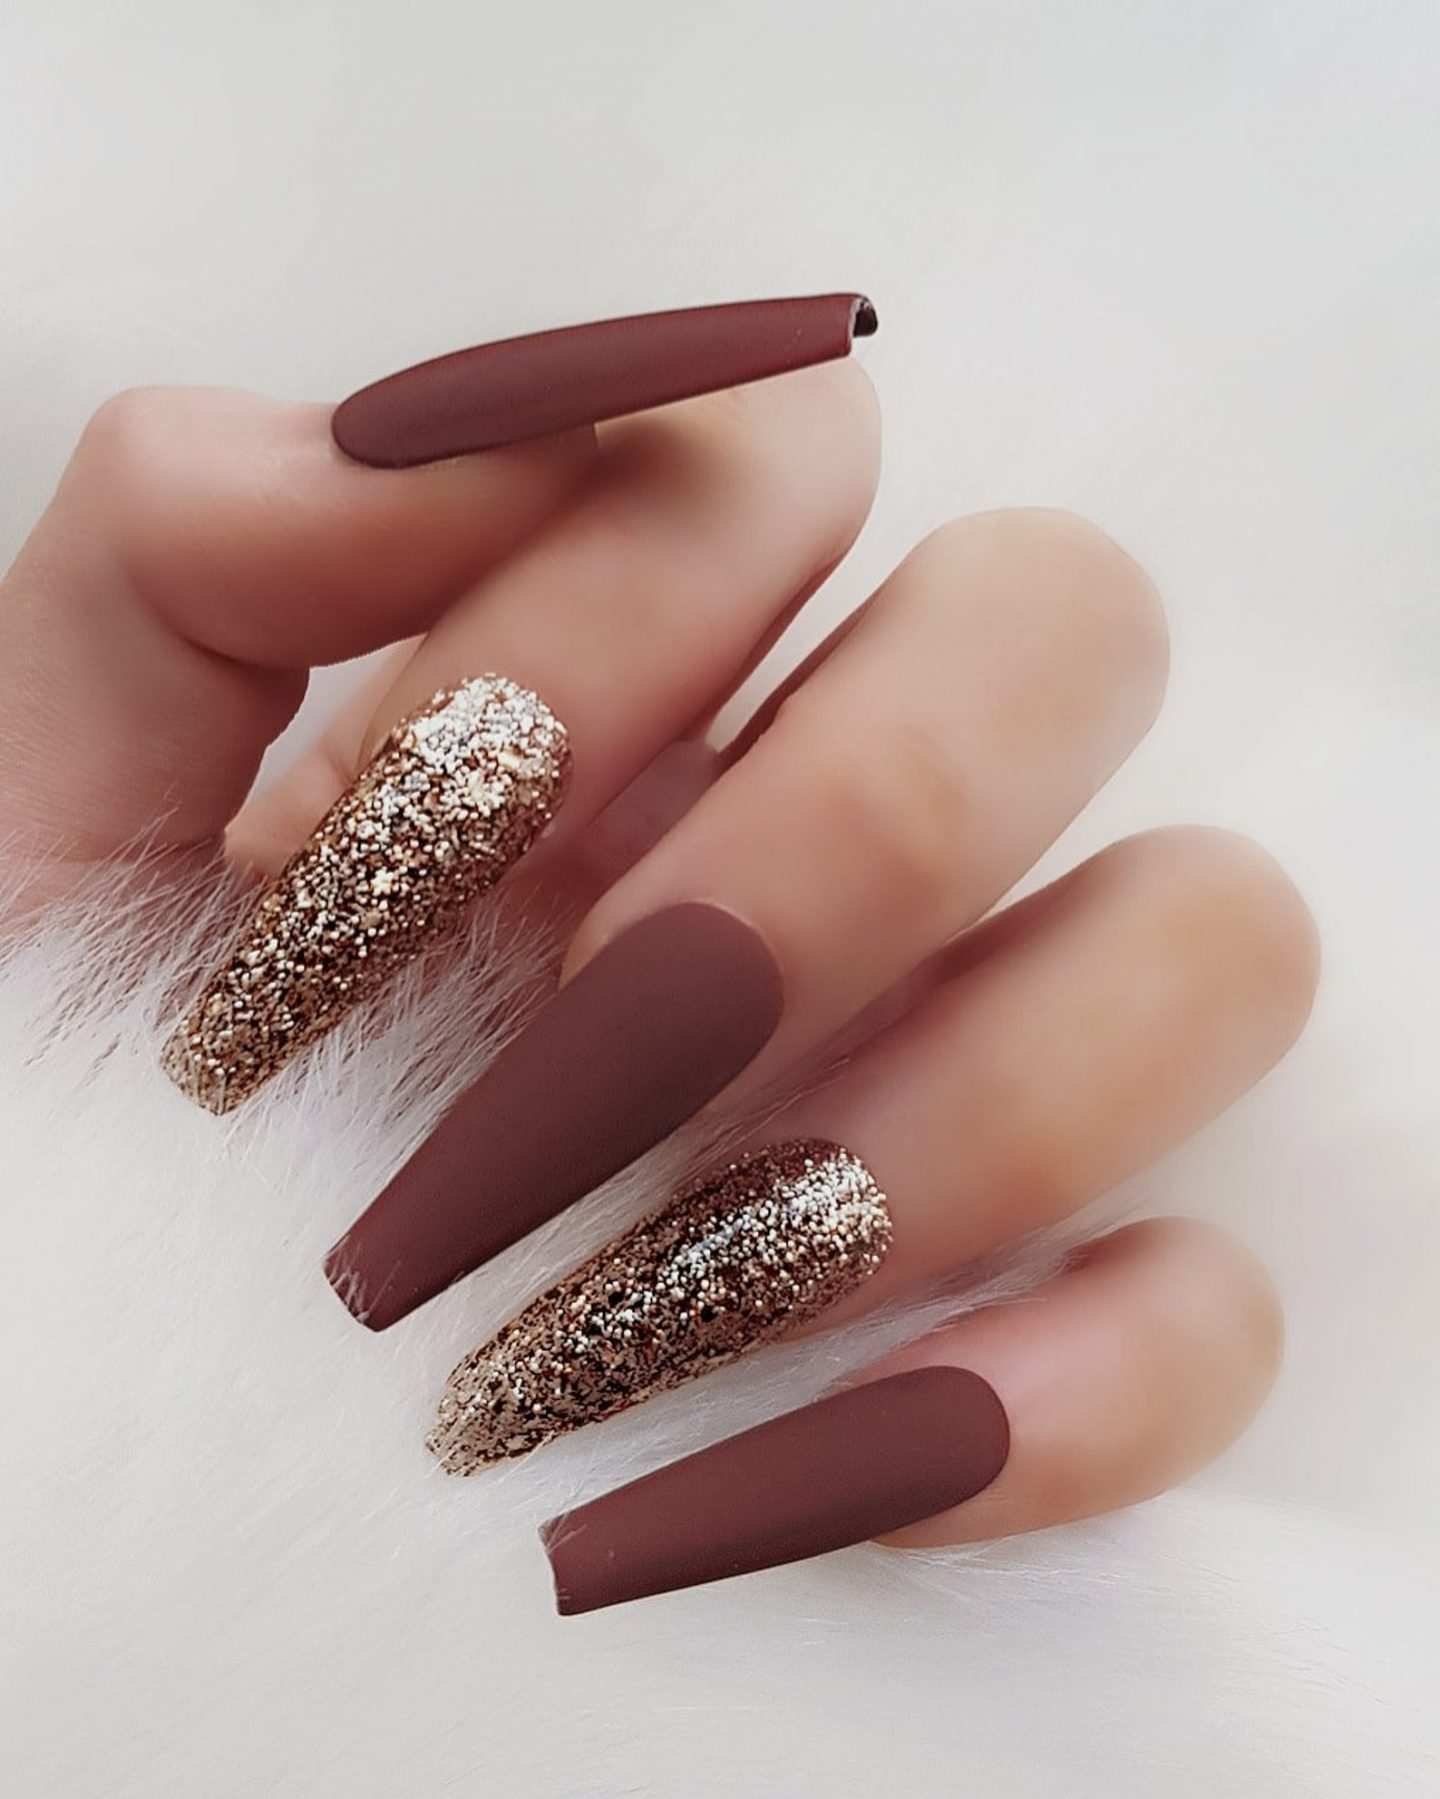 Matte brown nails with gold glitter